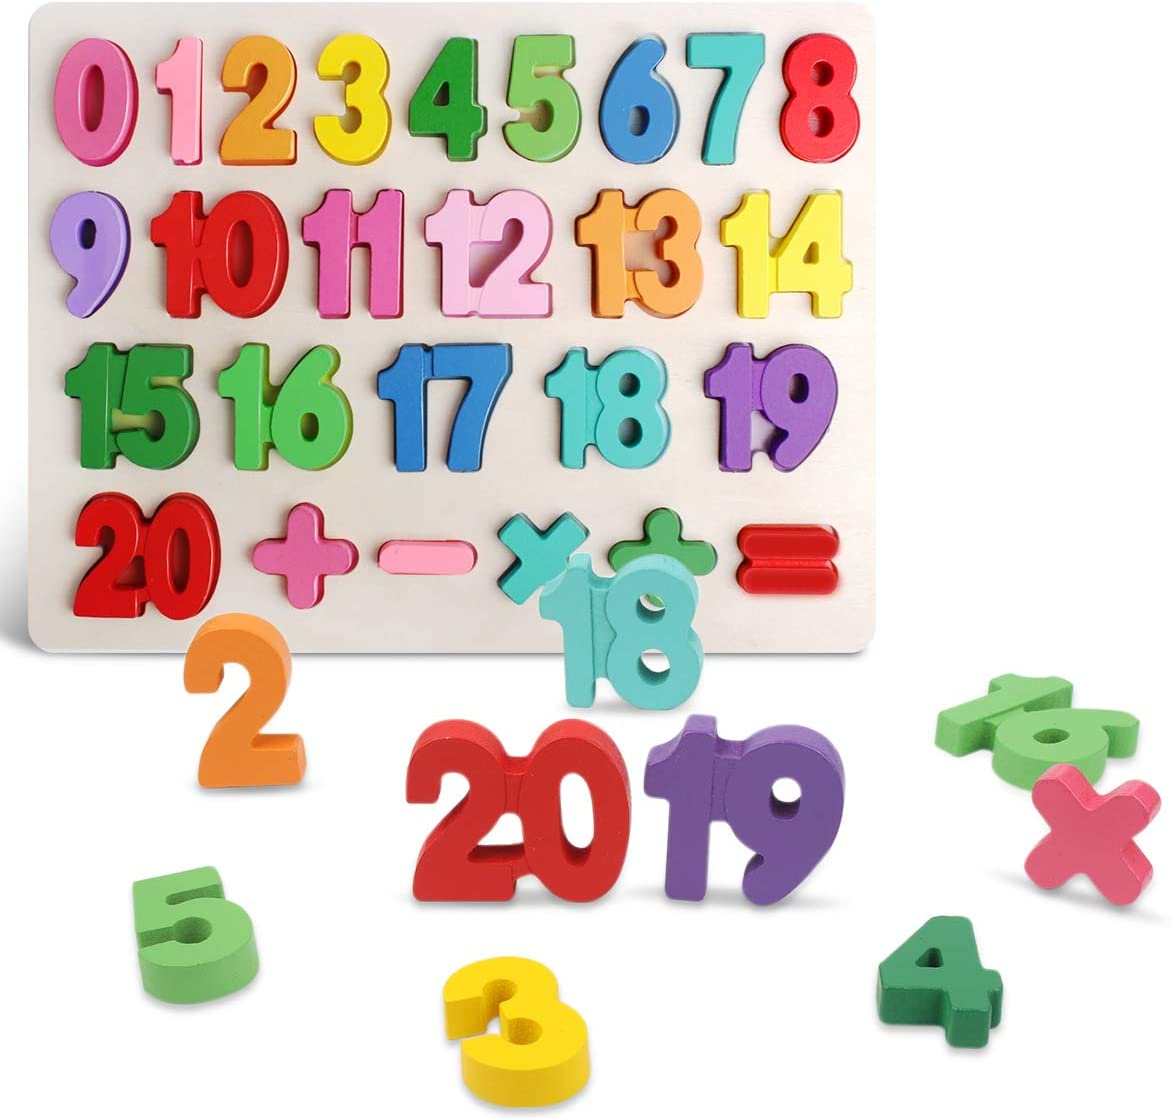 Kids Wooden Number Puzzles for $6.99 Shipped! (Reg.Price $13.99)